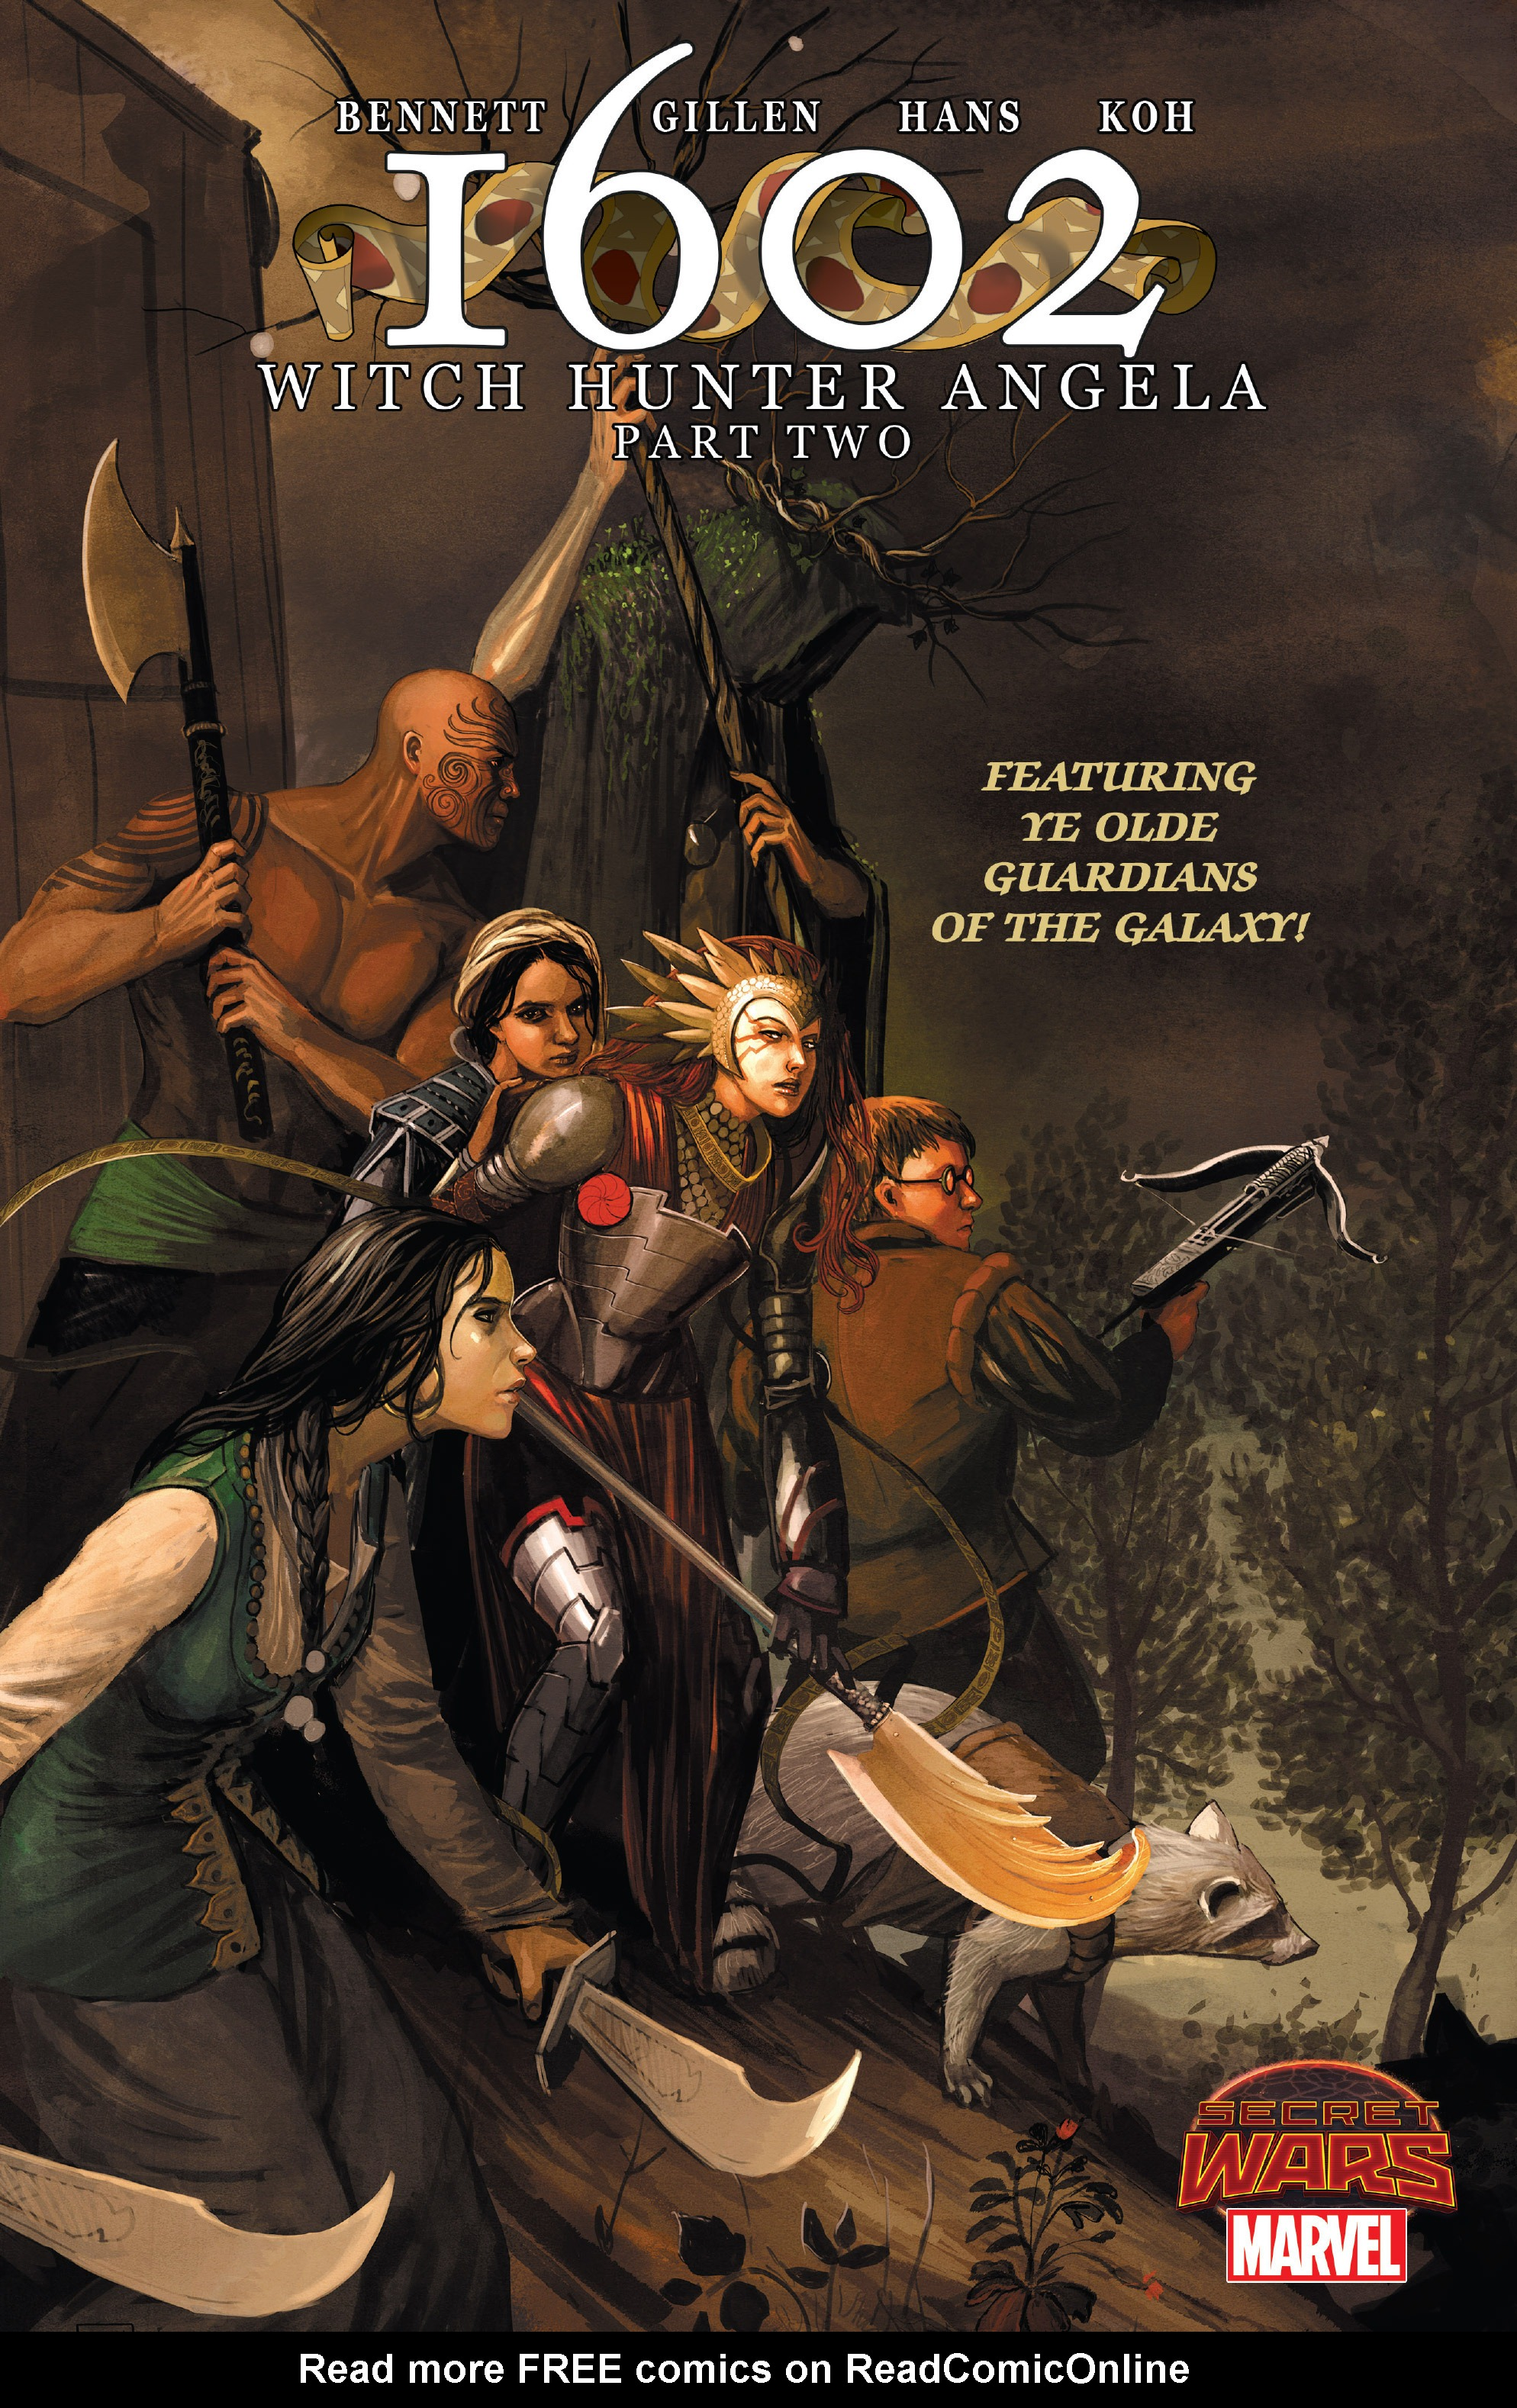 Read online 1602 Witch Hunter Angela comic -  Issue #2 - 1